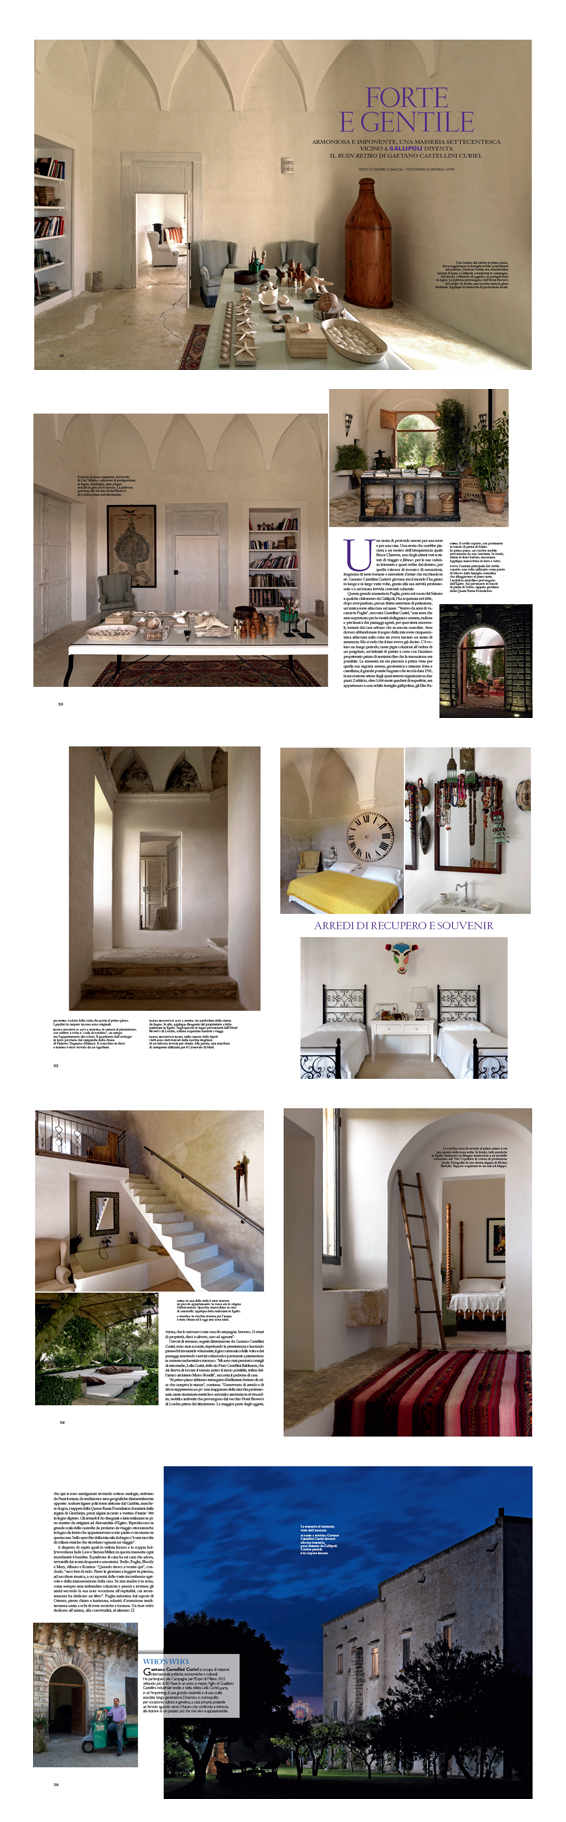 Villa Elia featured in the July 2011 edition of Architectural Digest   Think Puglia